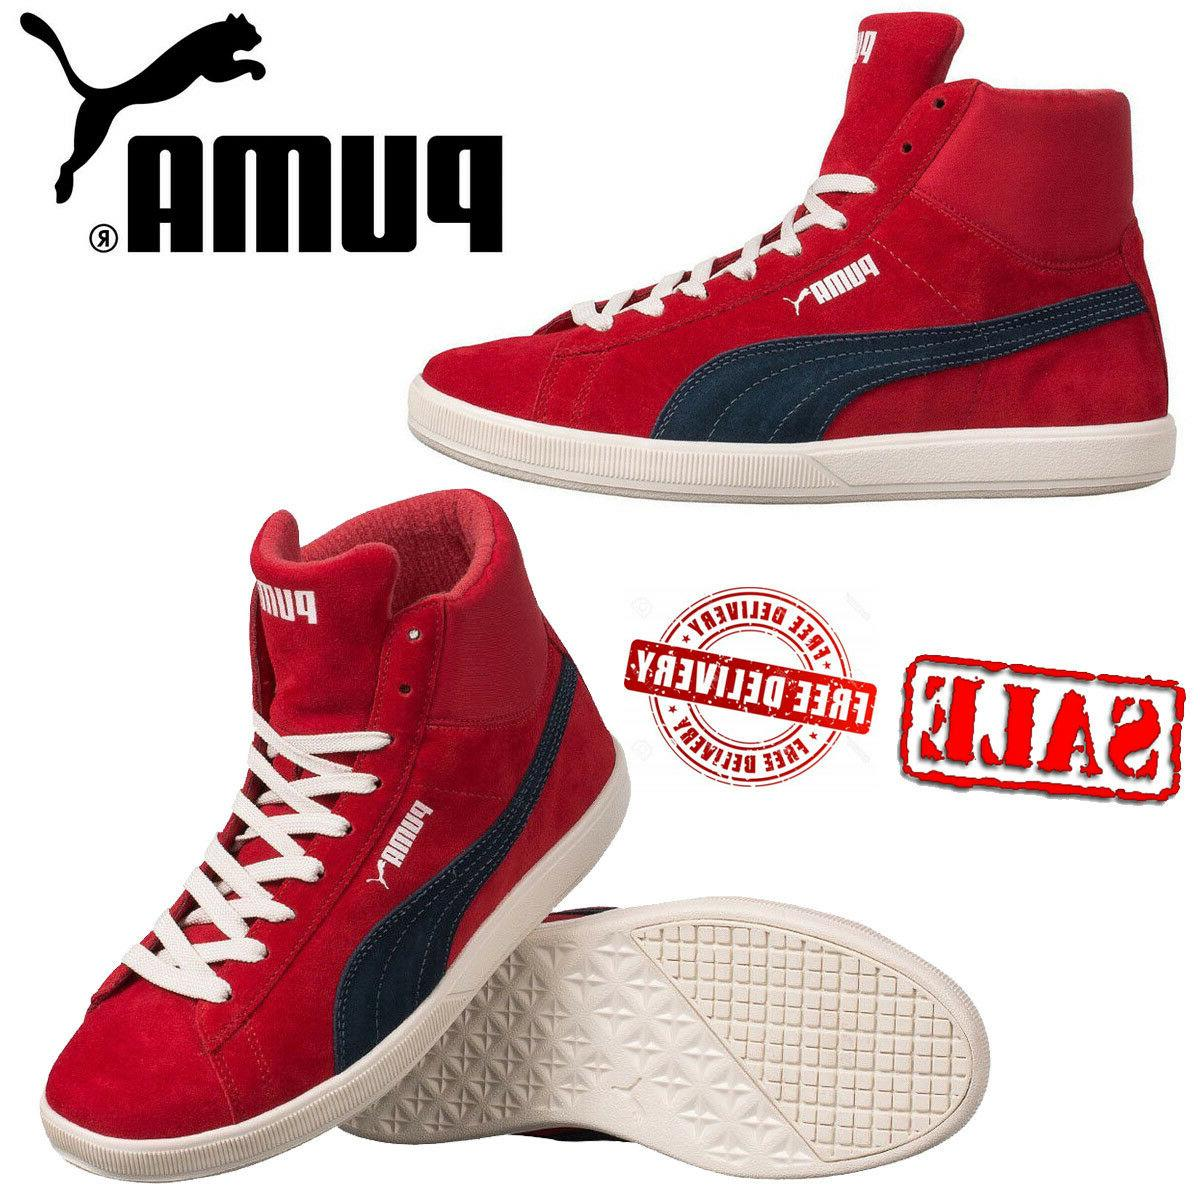 PUMA Archive Lite Basketball Shoes Leather Hi-Top Boots Retr